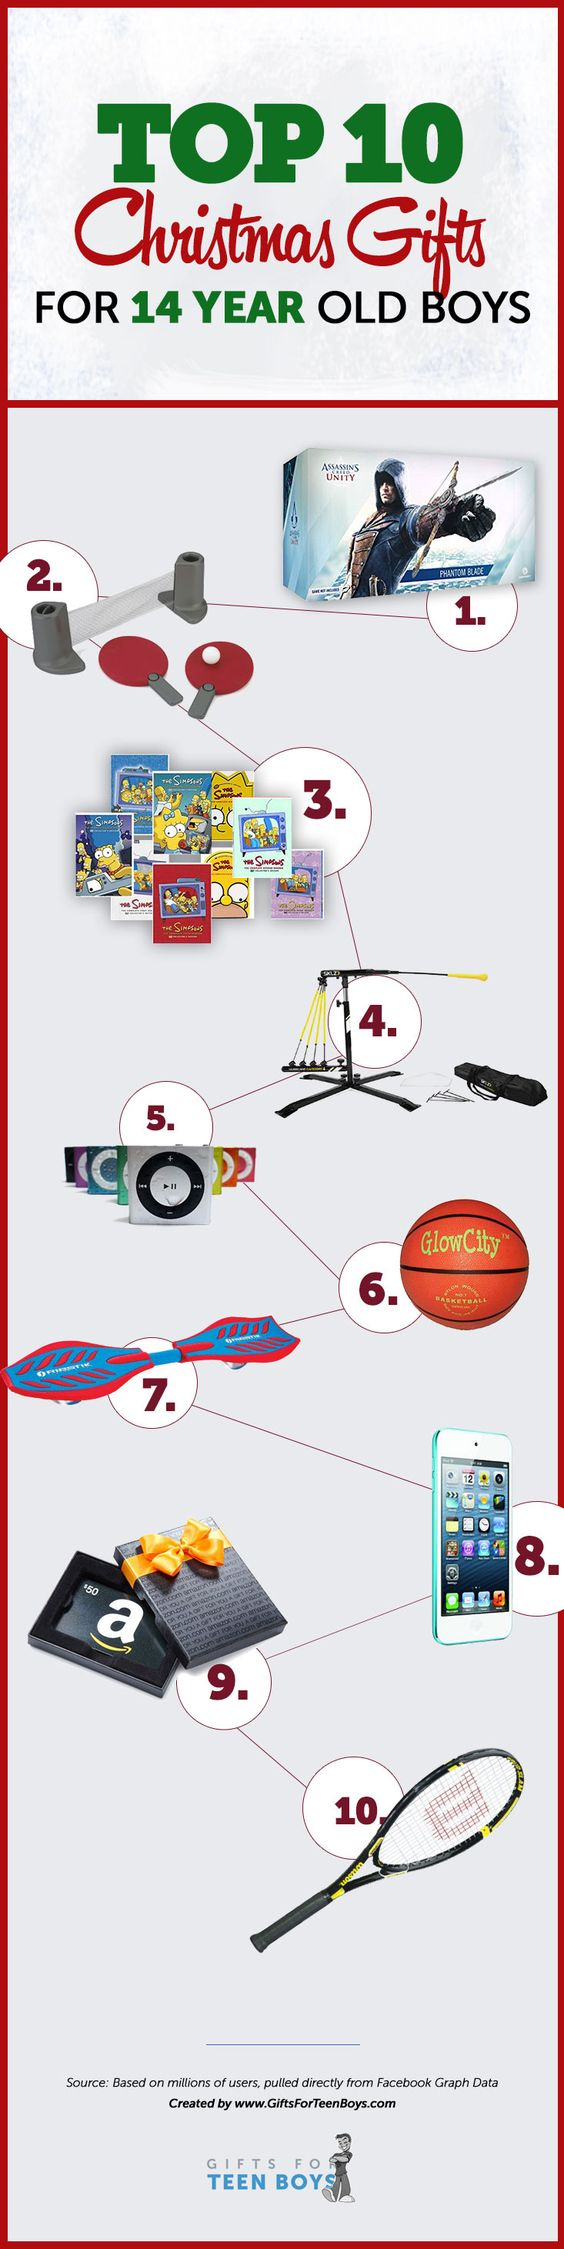 Christmas Gifts 14 Year Old Boys | Gifts for Teen Boys ...